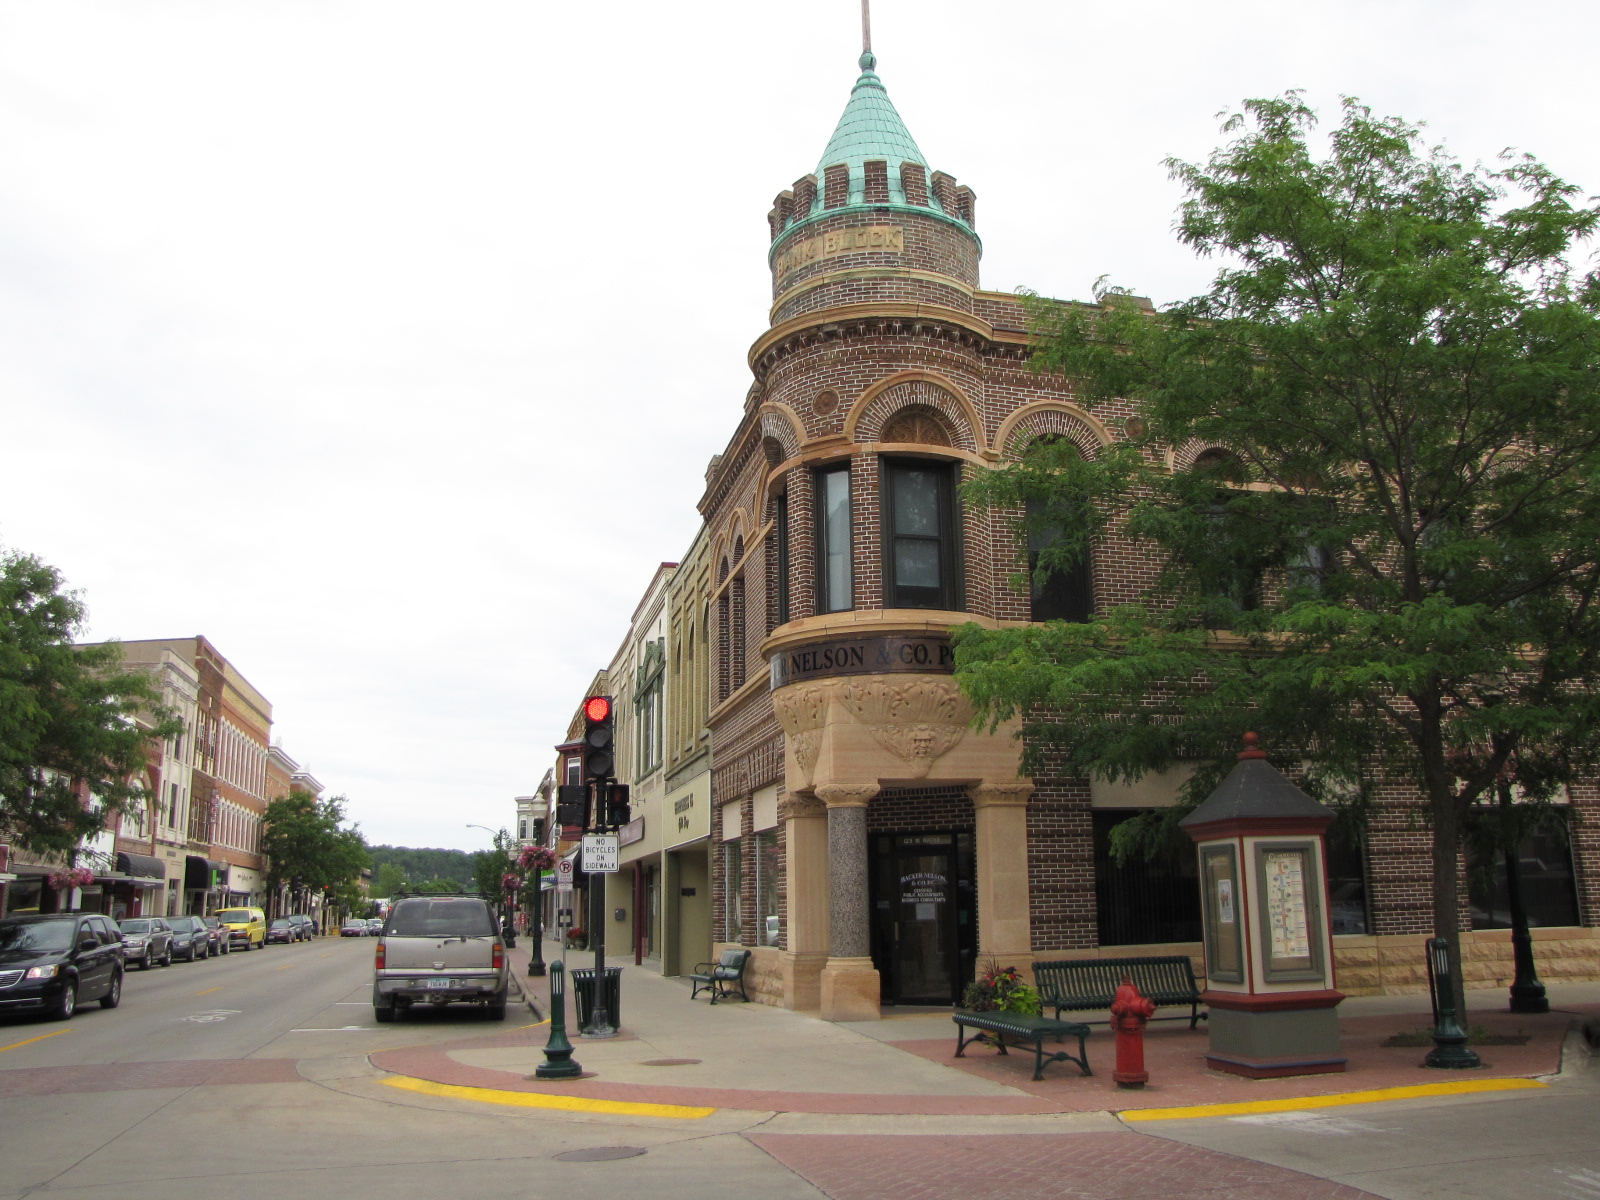 Downtown Decorah. Photo by Lisa Meyers McClintick.